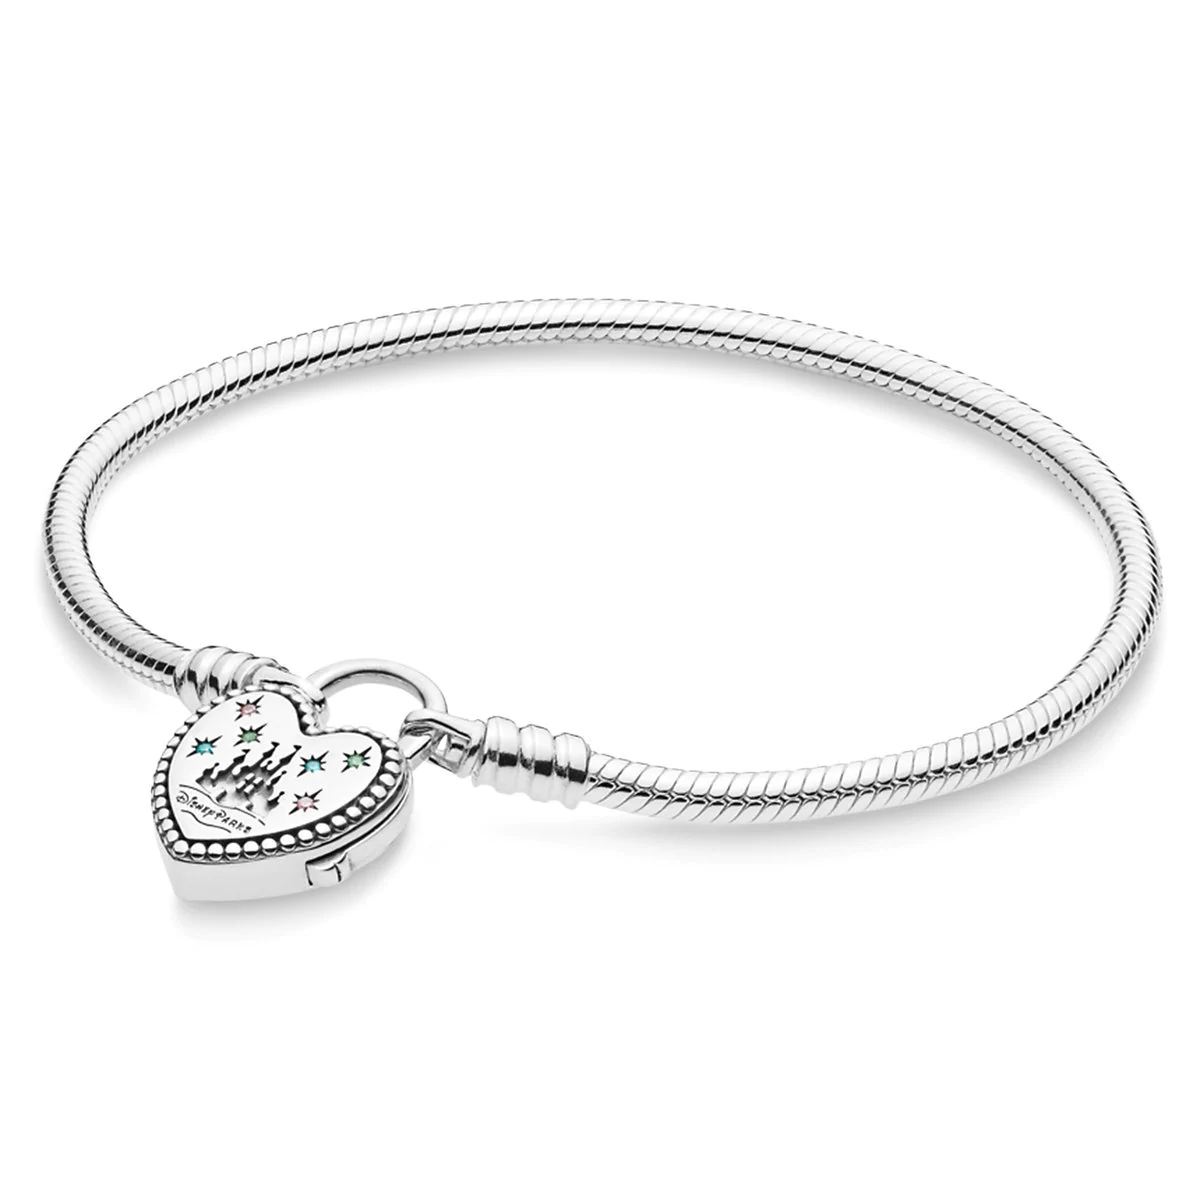 2019 Real 925 Sterling Silver Moments Fantasyland Castle Heart Pandora Bracelet Fit Women Bead Charm Bangle DIY Jewelry2019 Real 925 Sterling Silver Moments Fantasyland Castle Heart Pandora Bracelet Fit Women Bead Charm Bangle DIY Jewelry